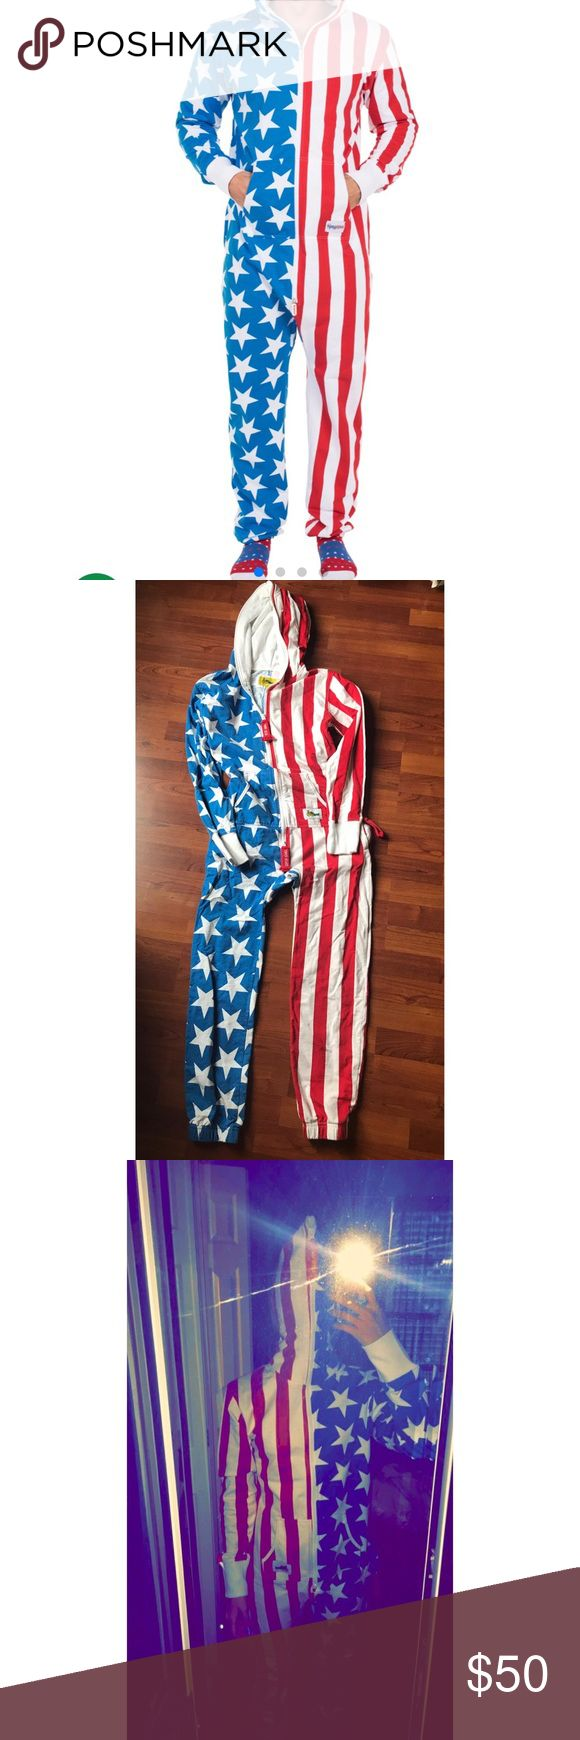 Tipsy Elves American Flag Jumpsuit Size XS, worn twice and has been washed once - in good condition! I'm 5'4 115lbs and this jumpsuit fits great on me! If you have any other questions please don't hesitate to ask!   tags: USA, 4th of July, Red White Blue, American Apparel, Pacsun, Dollskill Tipsy Elves Other